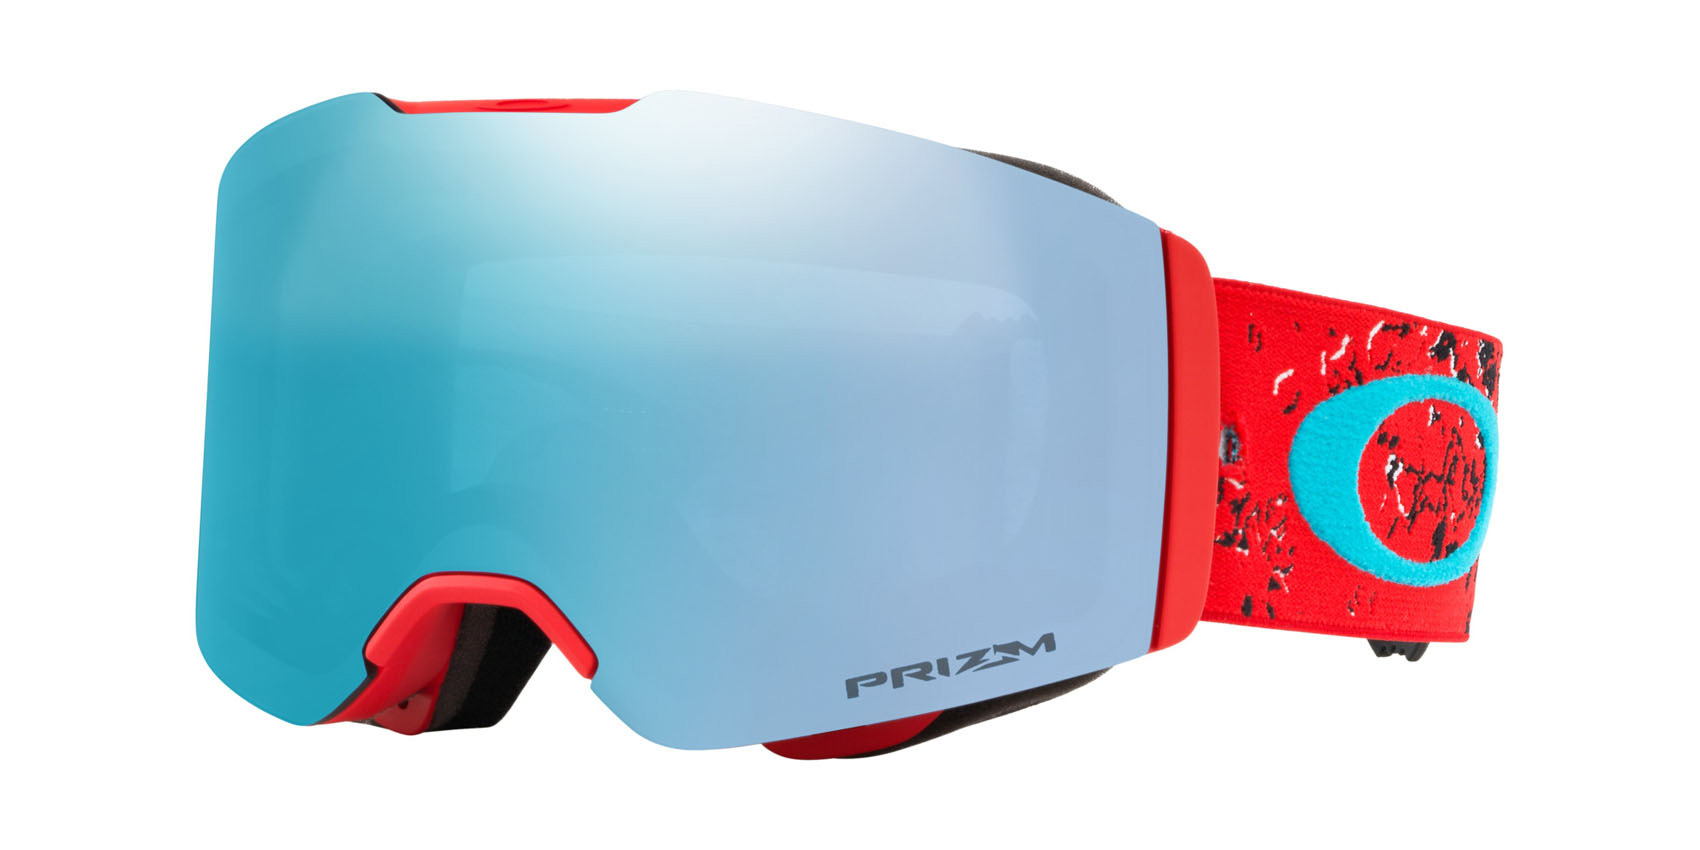 6b5894d797 Popular Oakley products at The Board Basement